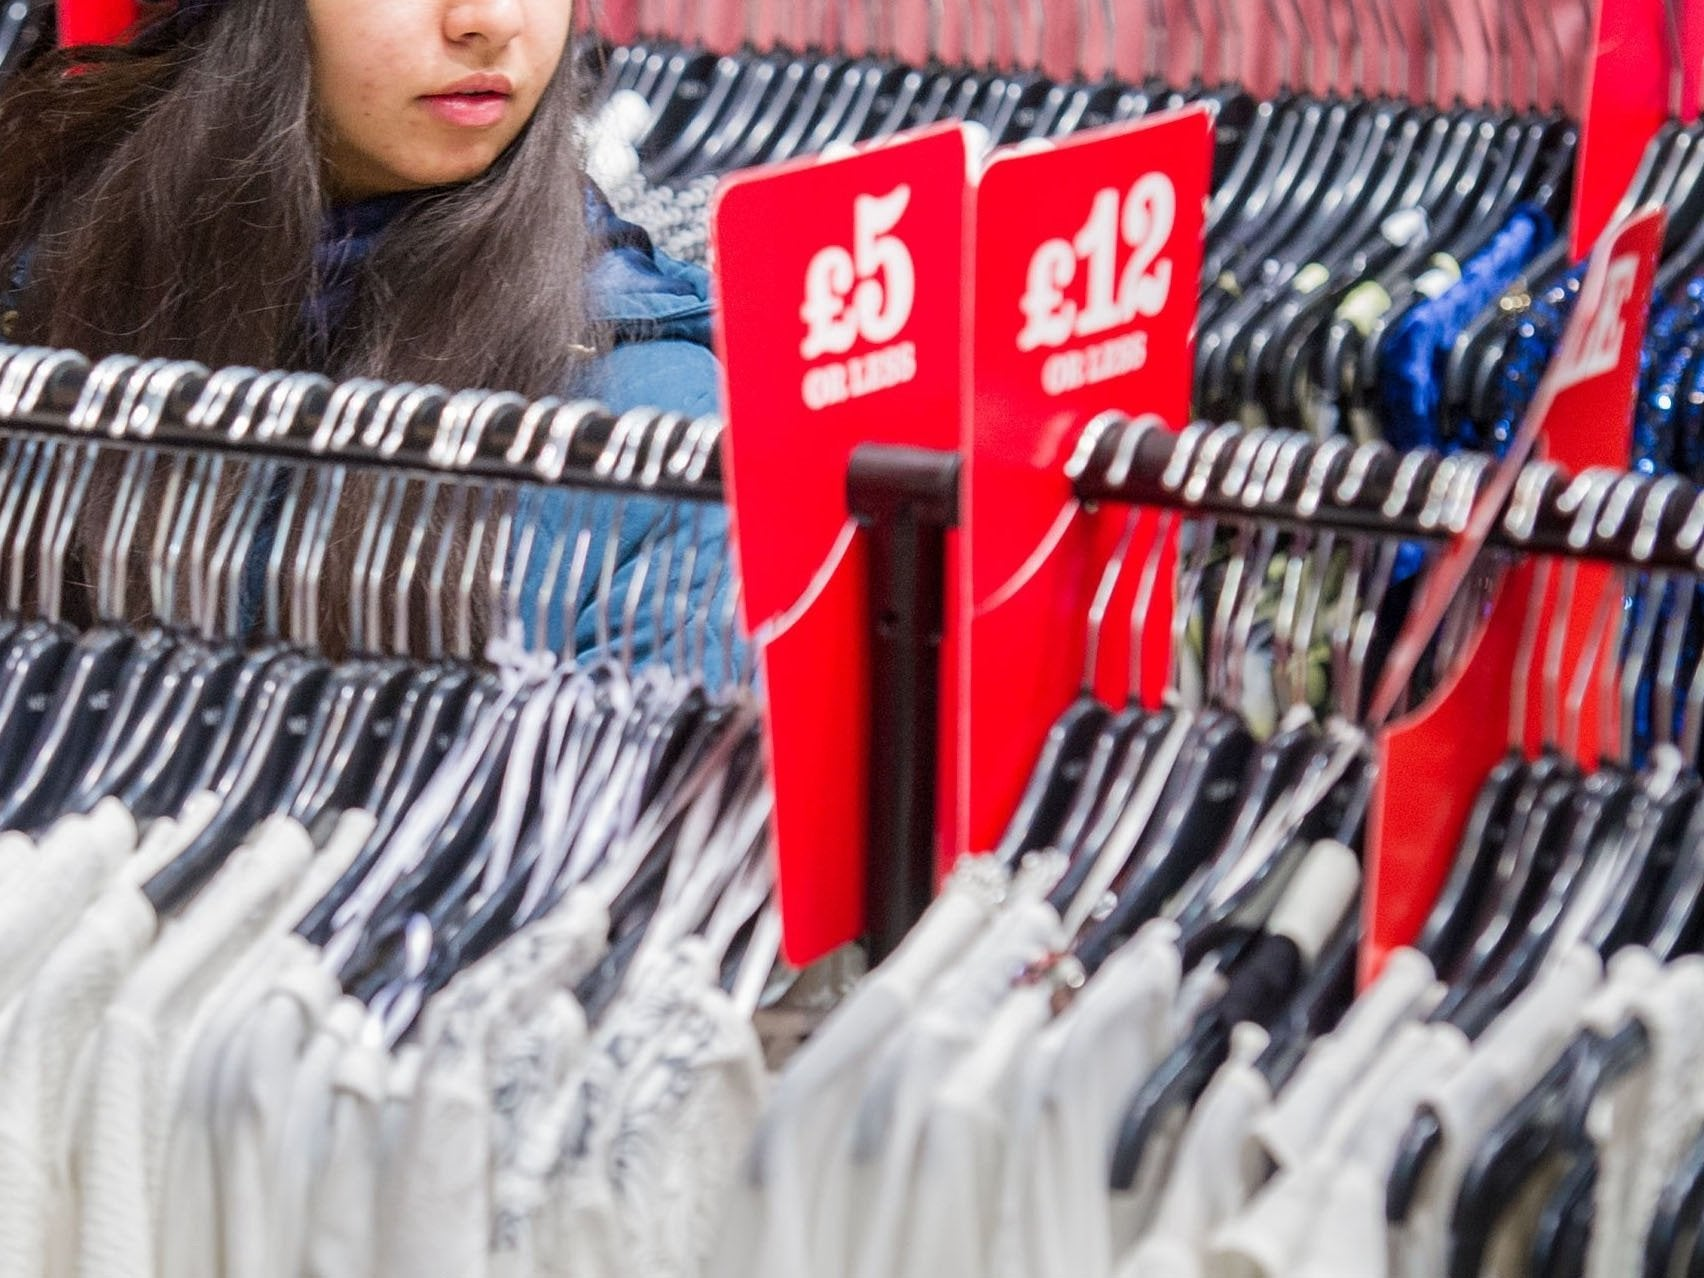 a6408caca824a We need a tax on fast fashion to end this ridiculous millennial trend of  constantly buying new clothes | The Independent